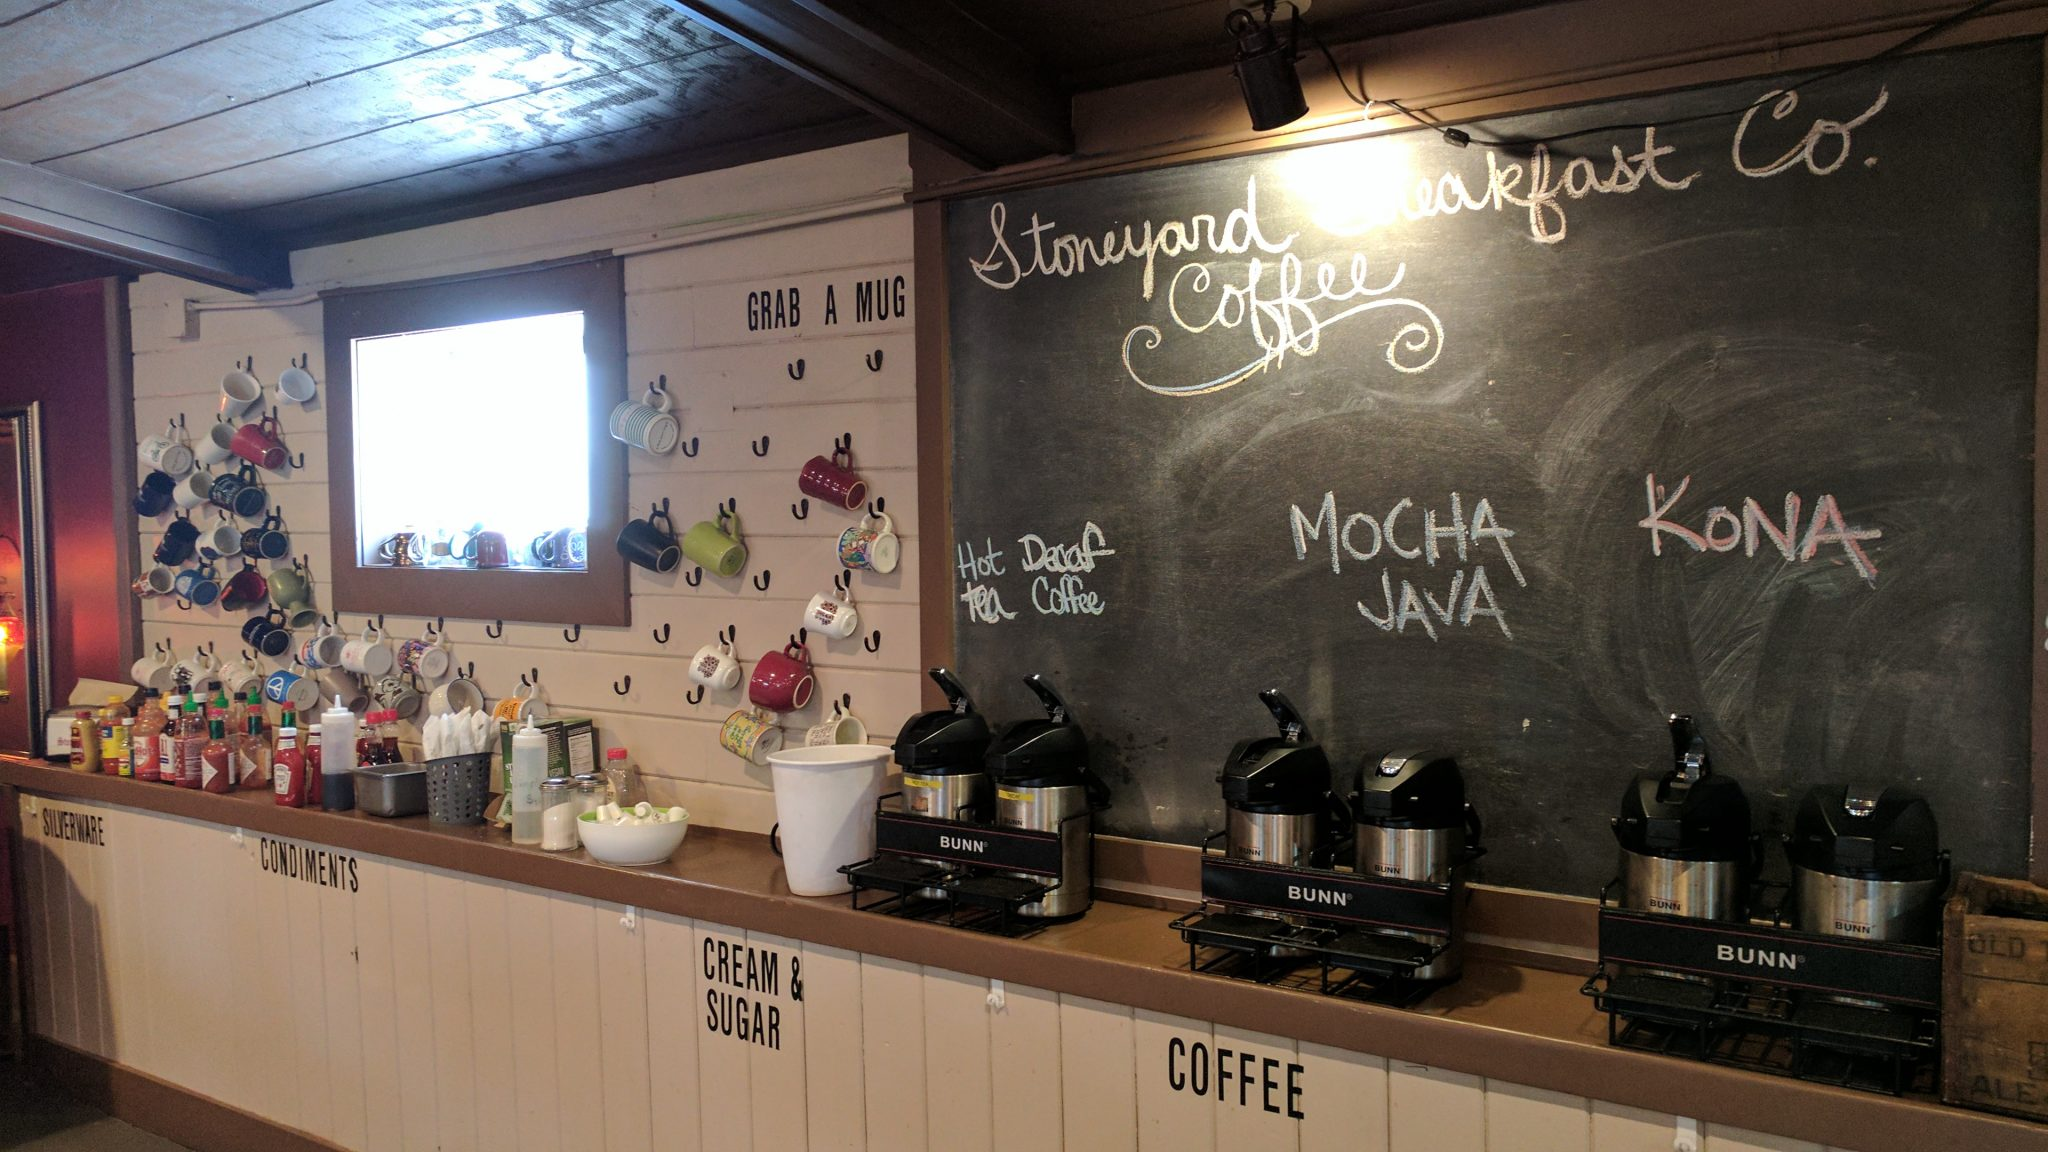 Coffee Counter At Stoneyard Breakfast Company In Brockport, NY